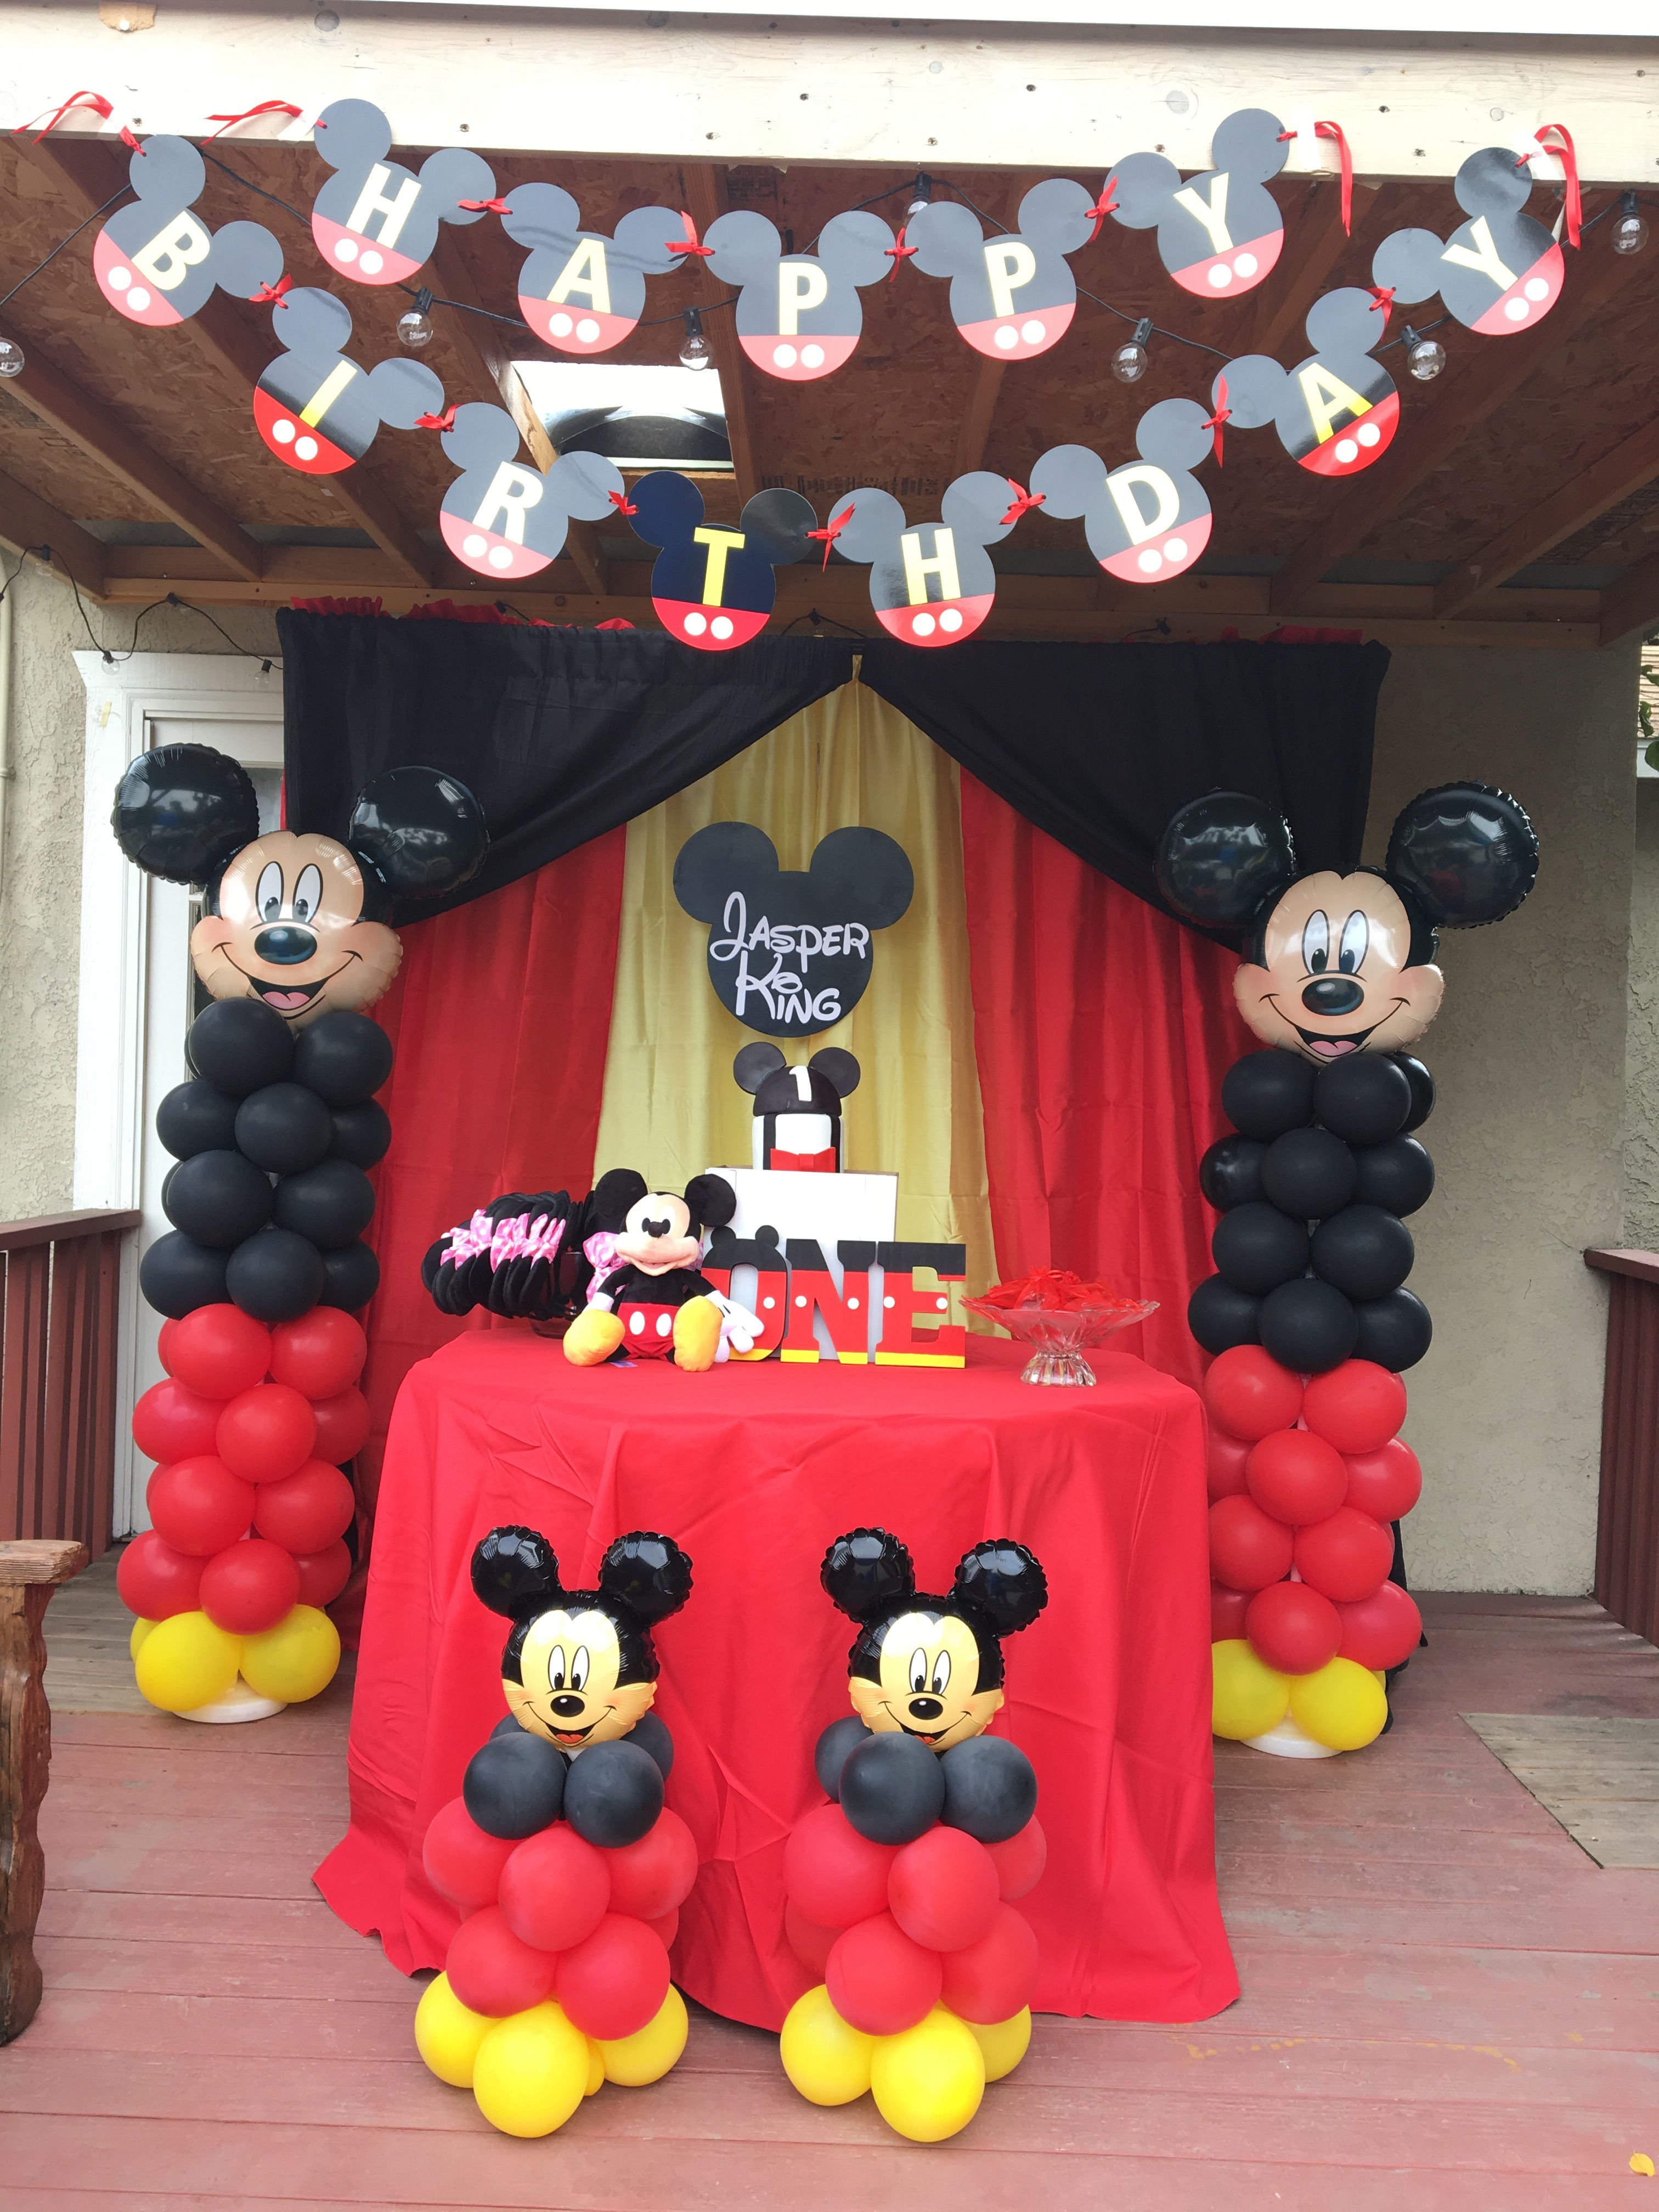 Mickey Mouse Cake Table Backdrop Decor Lalaspartycreations5 Ig Mickey Mouse Birthday Decorations Mickey Mouse Theme Party Mickey Mouse Birthday Theme